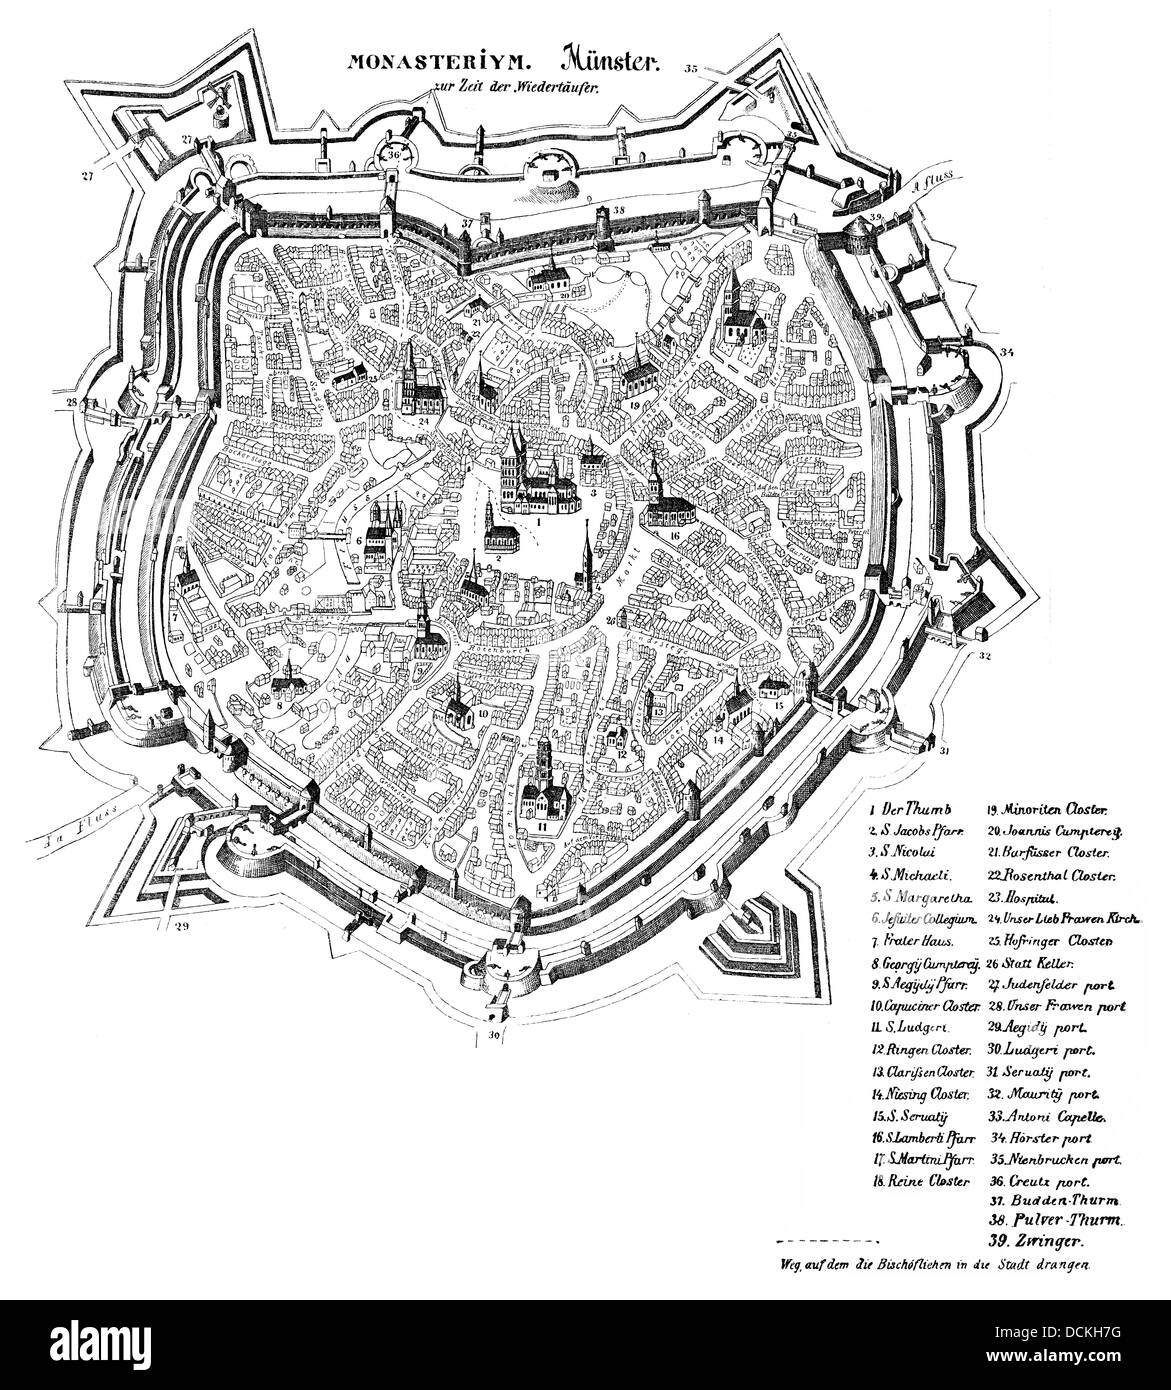 map of Muenster in the 16th Century at the time of the Anabaptists